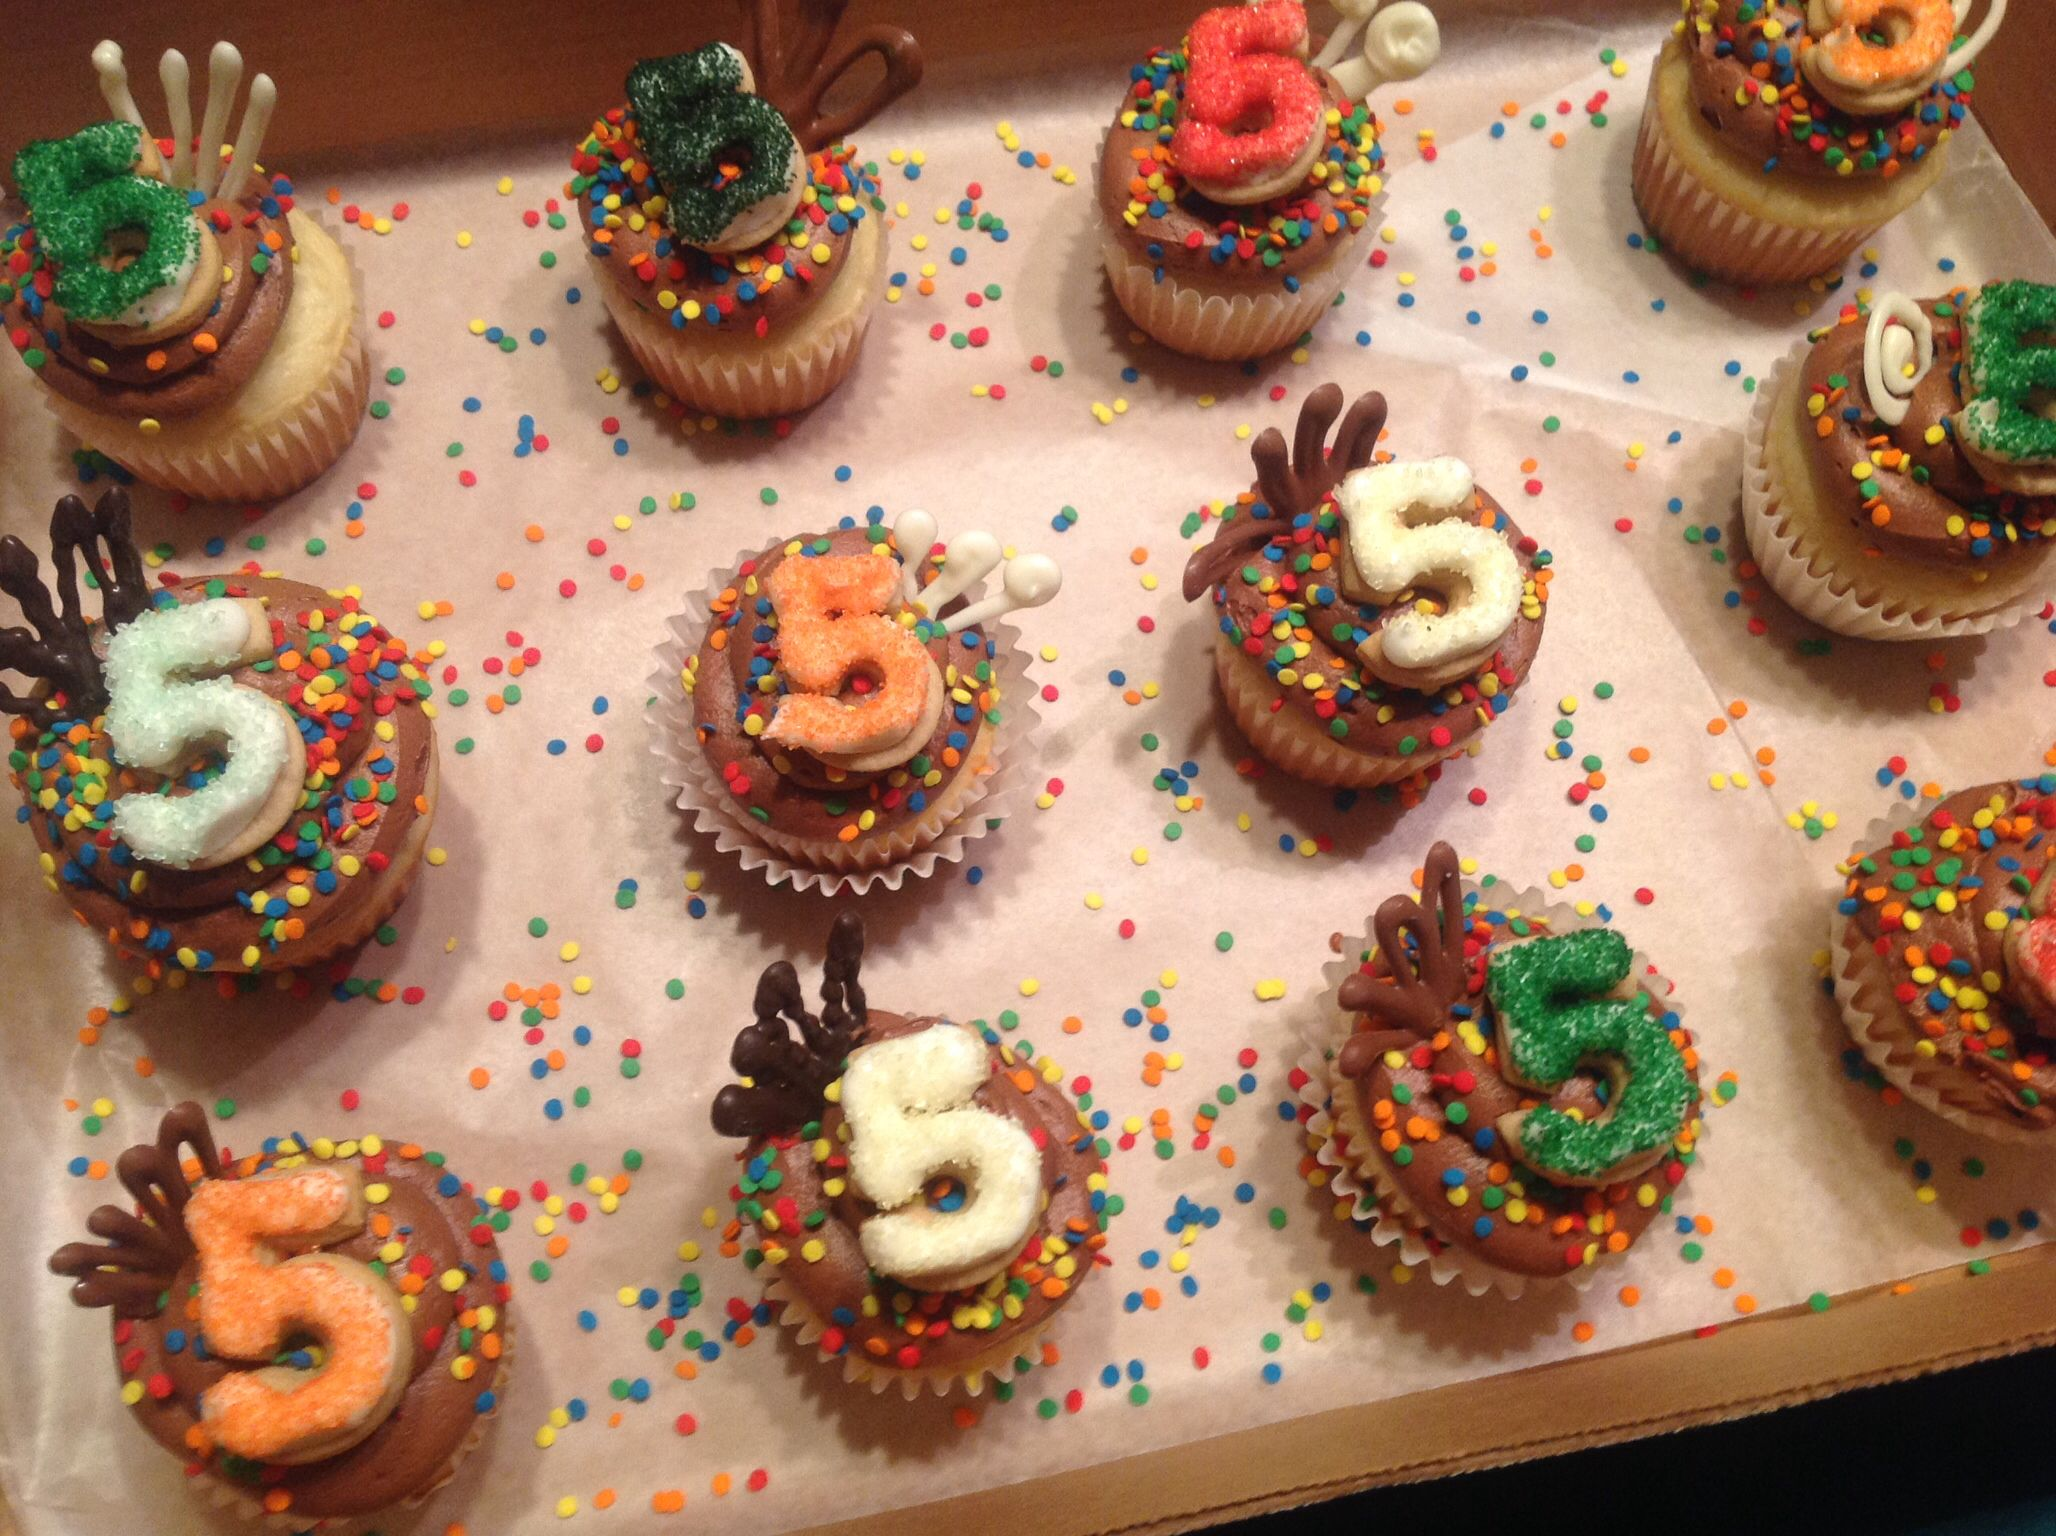 Birthday cupcakes  Cupcake/Cake Decorating ideas  Pinterest